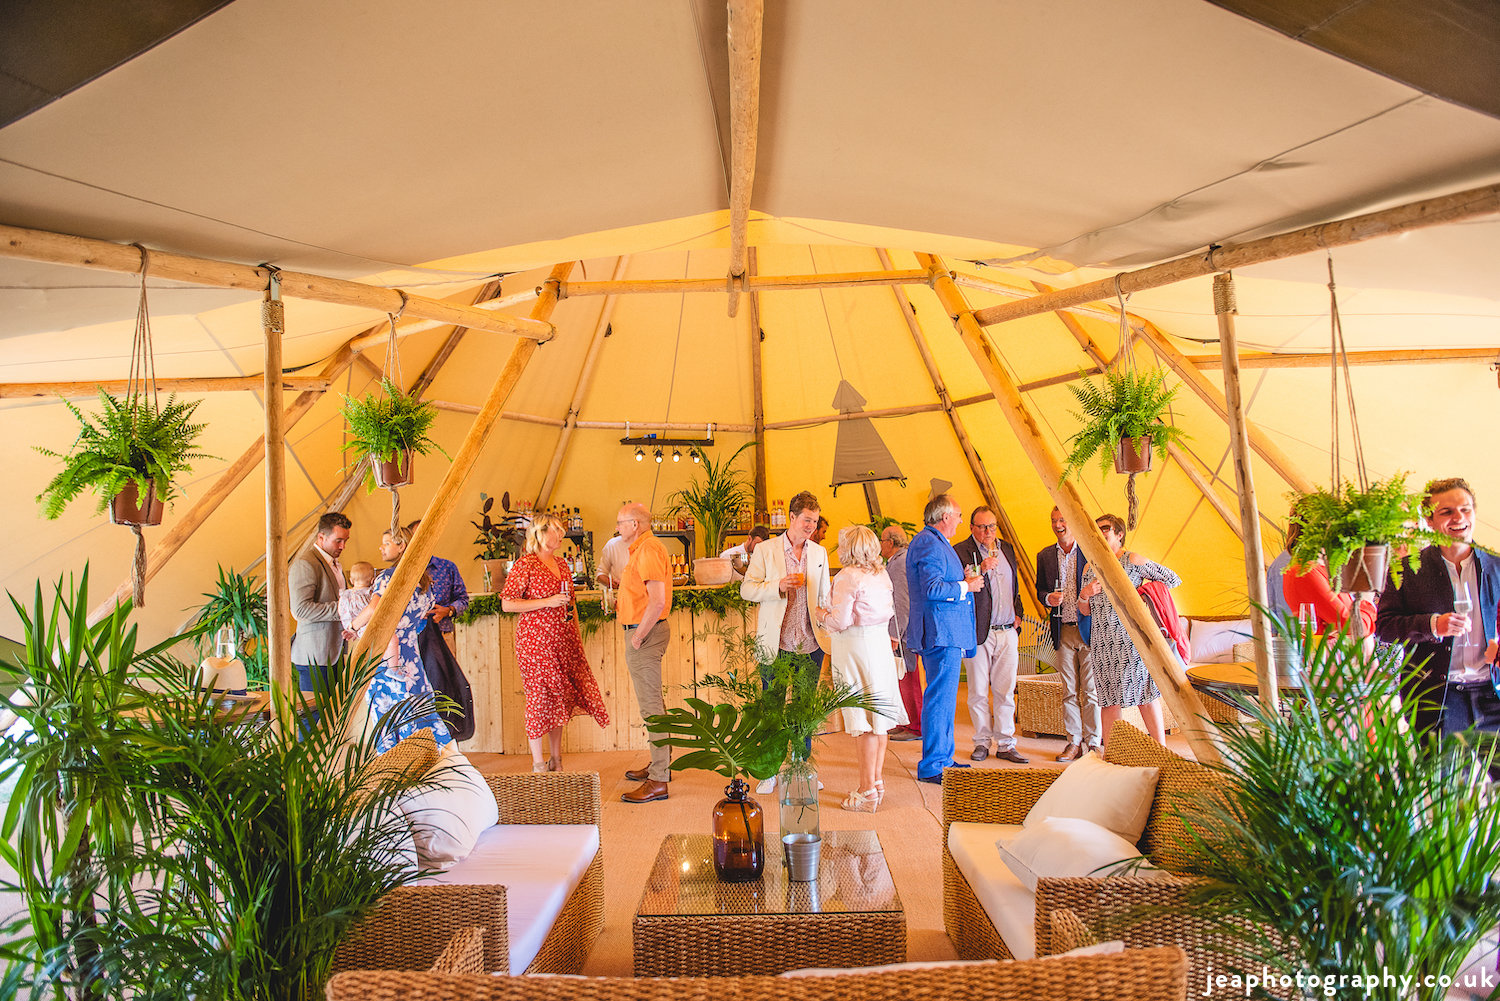 Wiltshire_wedding_party_Buffalo_tipi.jpg